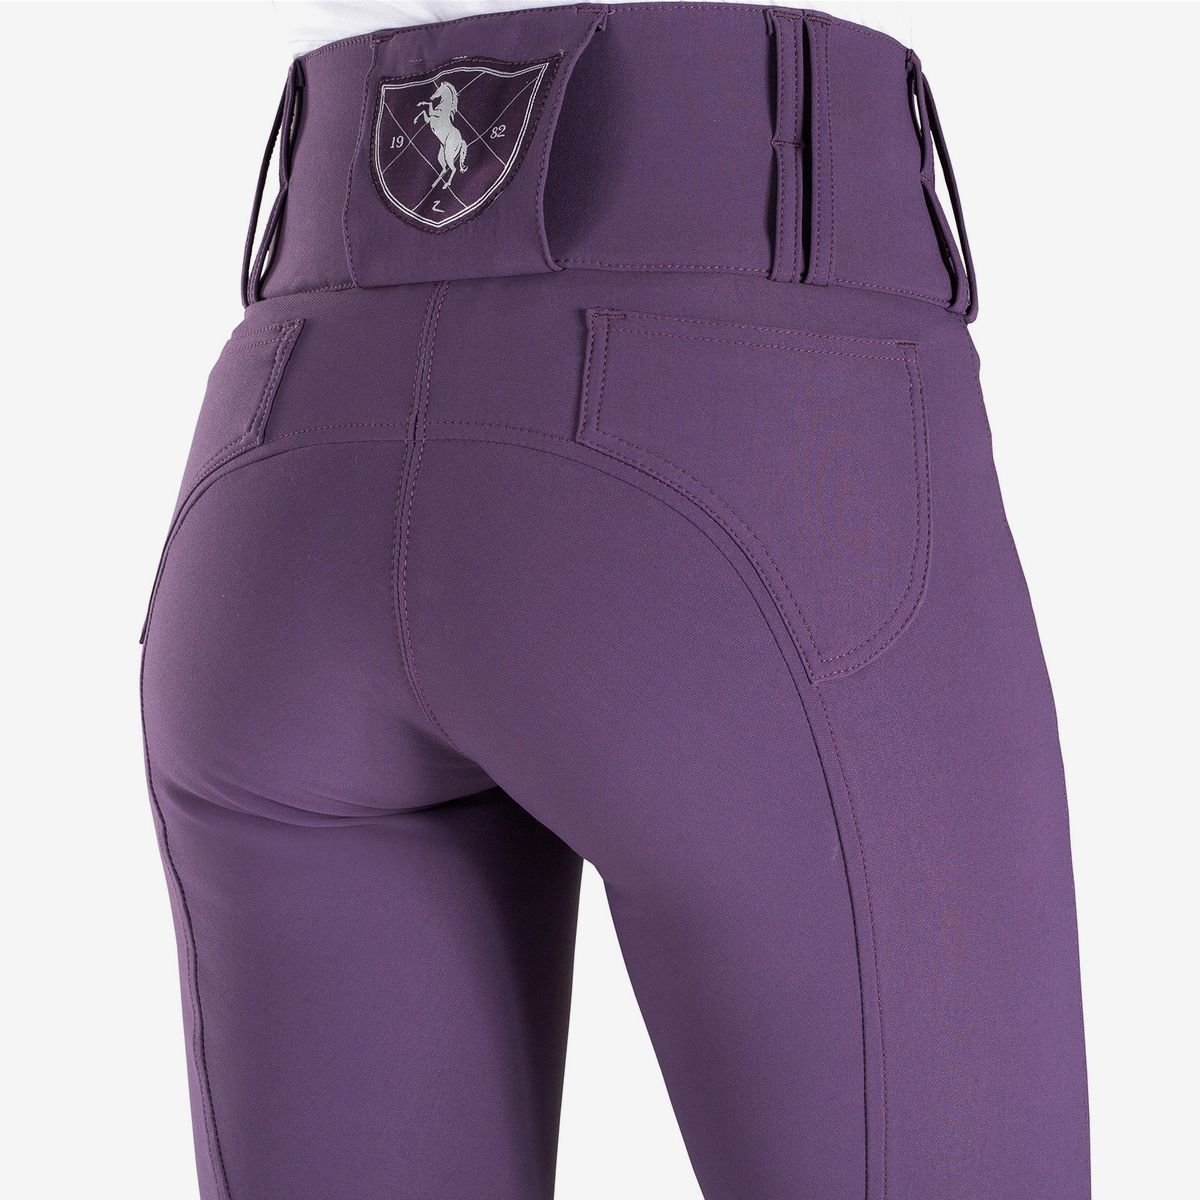 Horze-Desiree-Women-039-s-Knee-Patch-Riding-Breeches-with-High-Waist-and-Bi-Stretch thumbnail 13